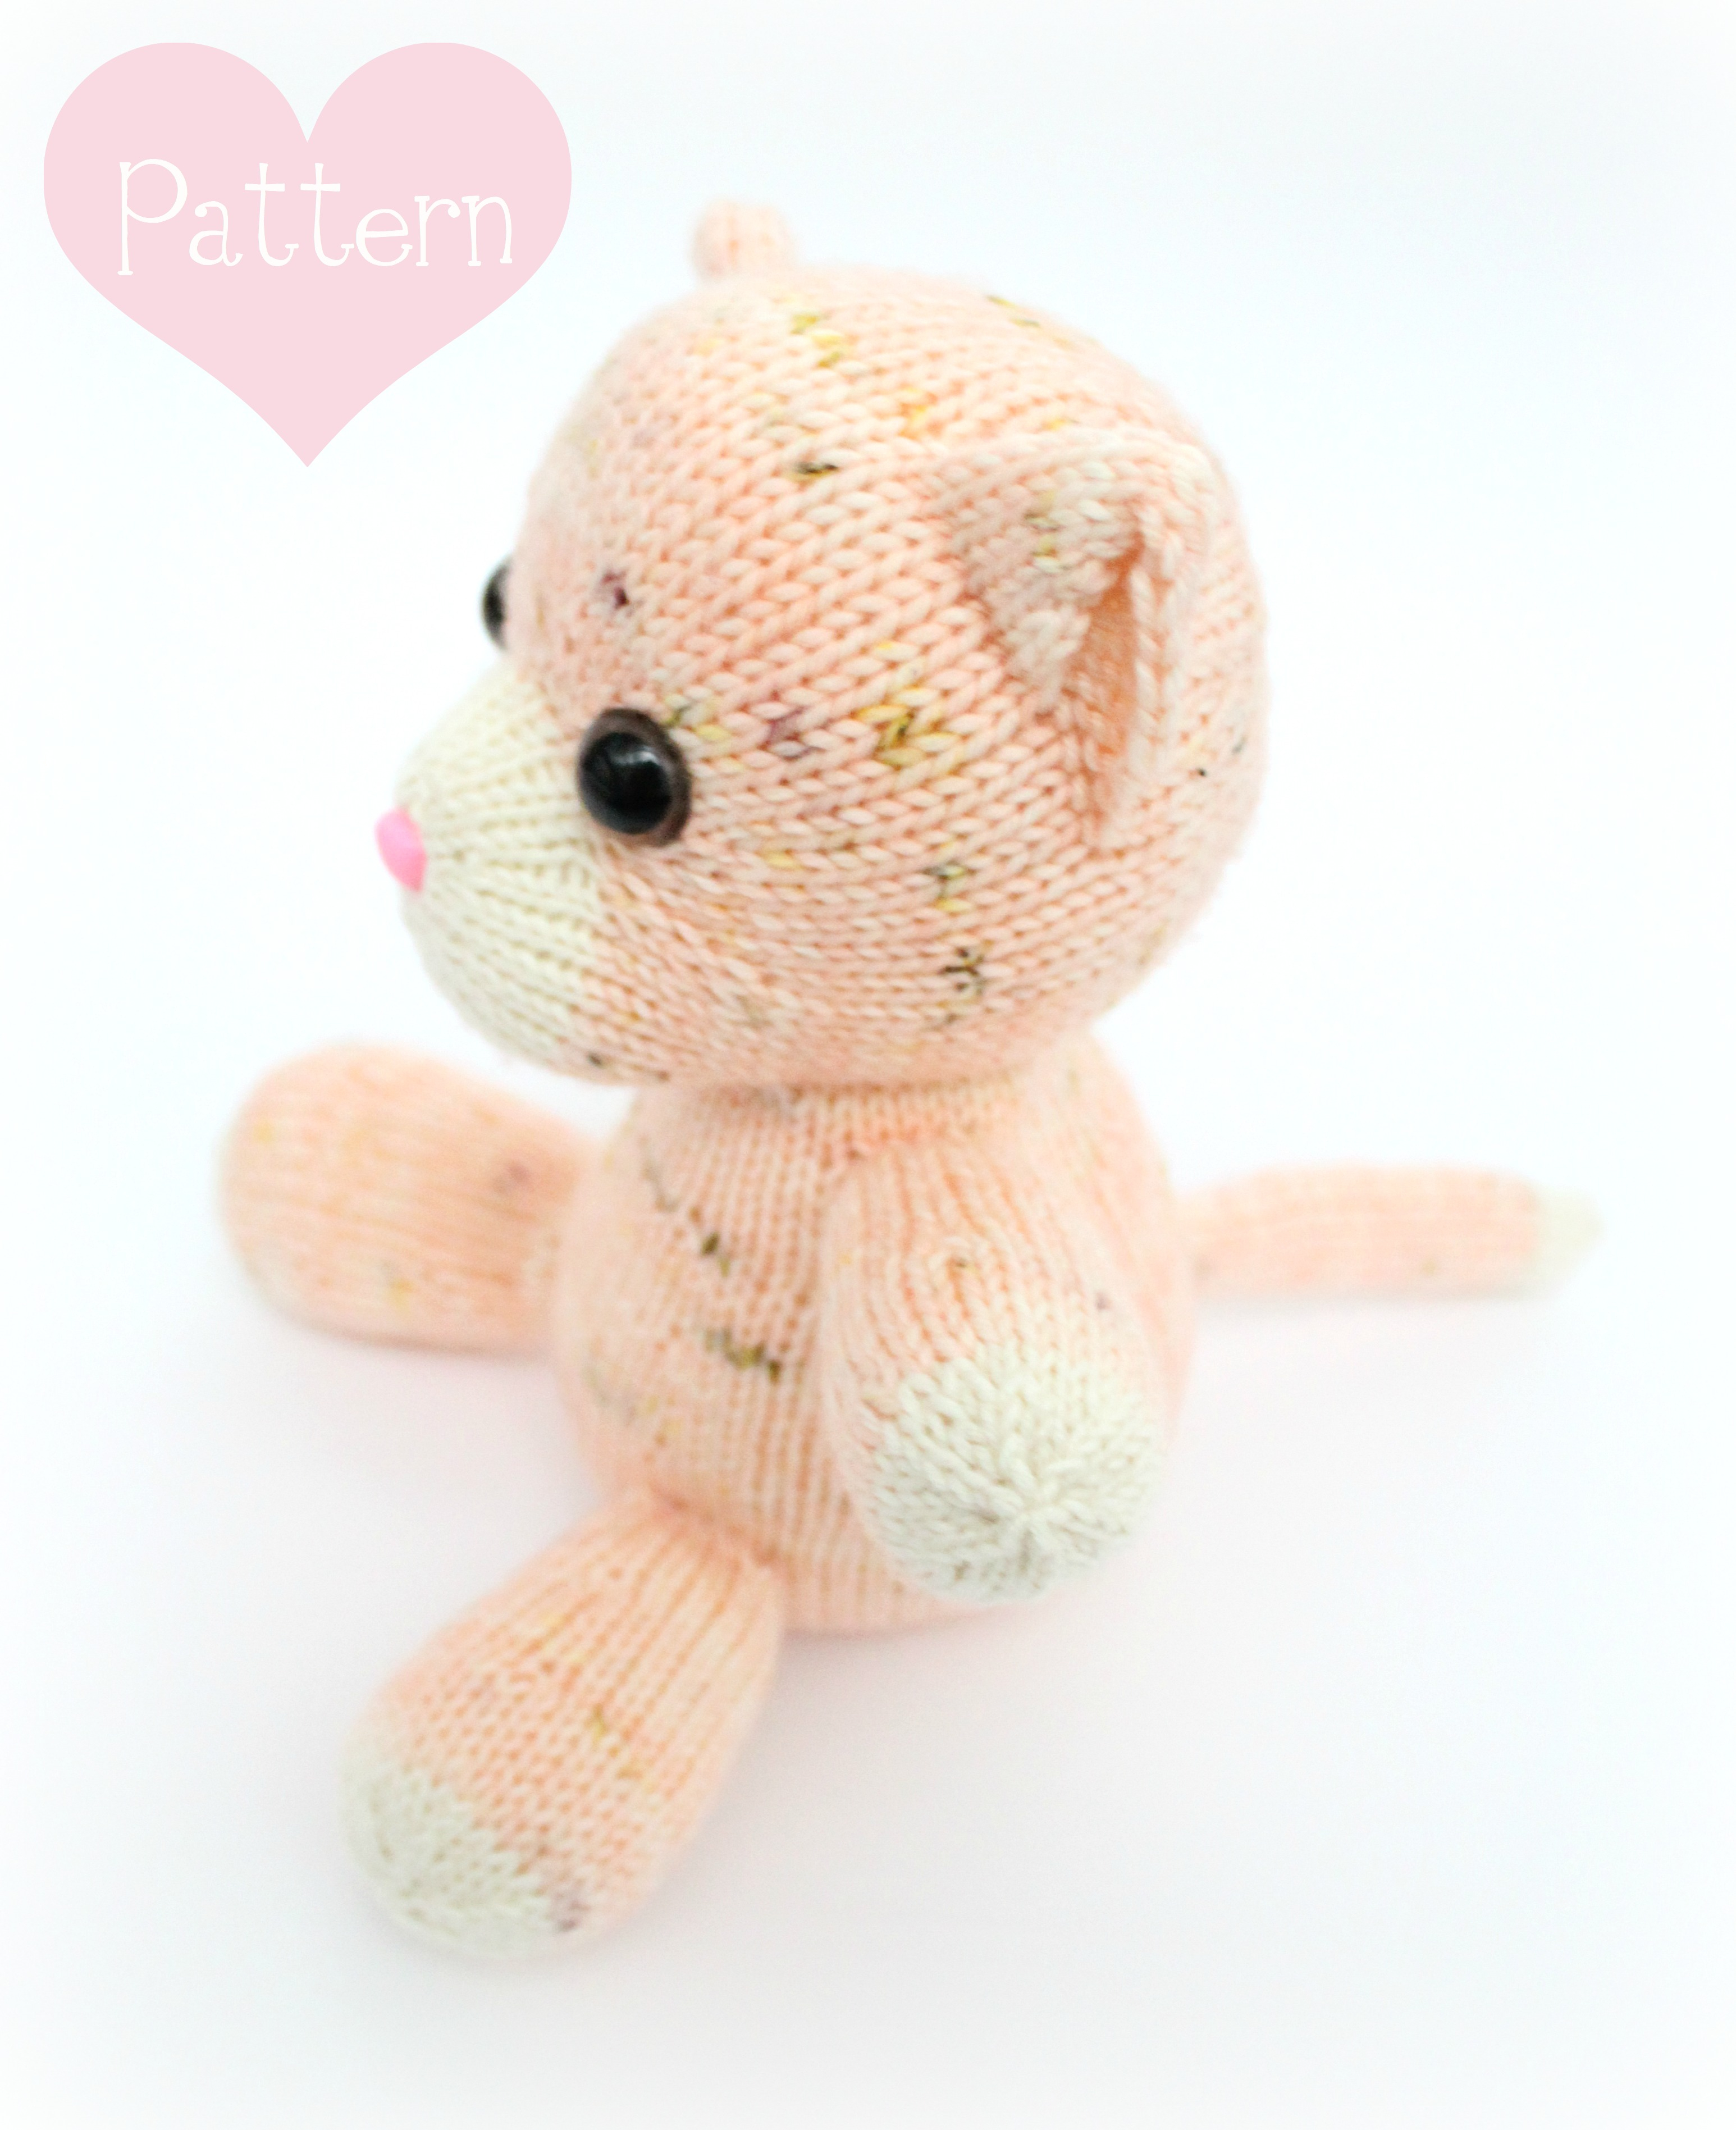 Knitting Patterns For Cat Toys Free Knitting Pattern Peaches The Kitten Knitted Toy Cat Pattern